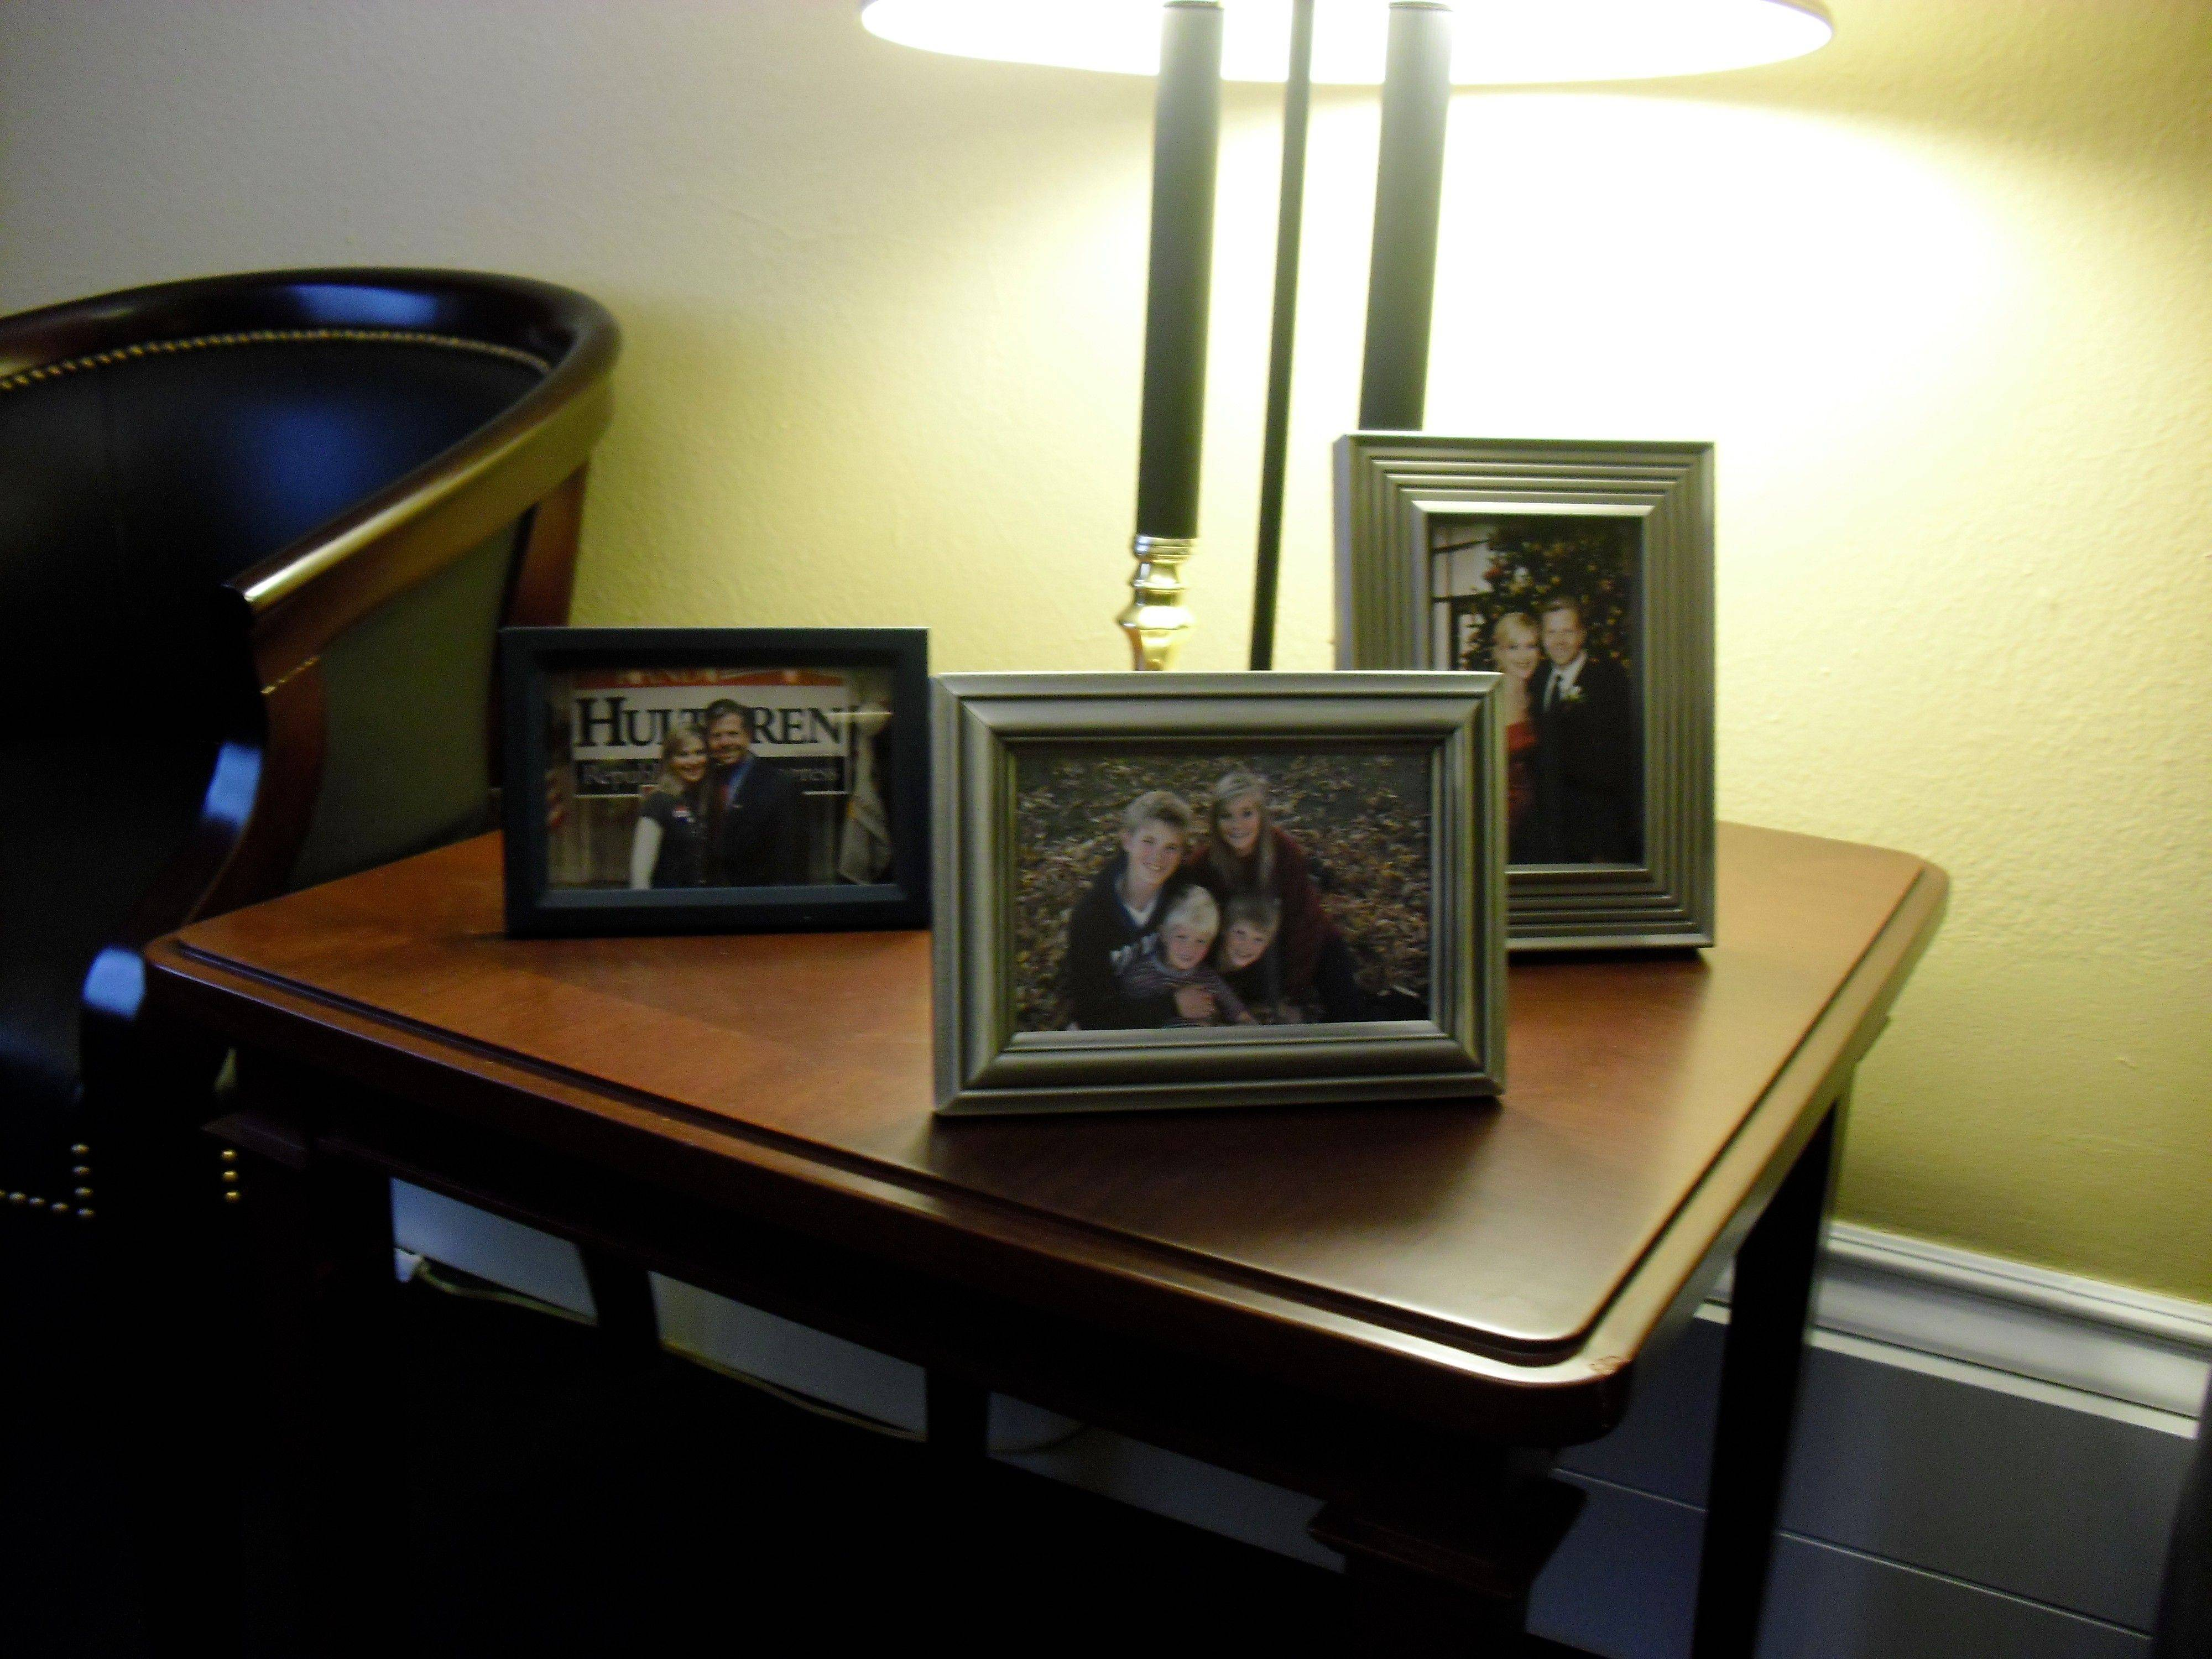 Photos of U.S. Rep. Randy Hultgren's family sit on table in his Washington, D.C., office.